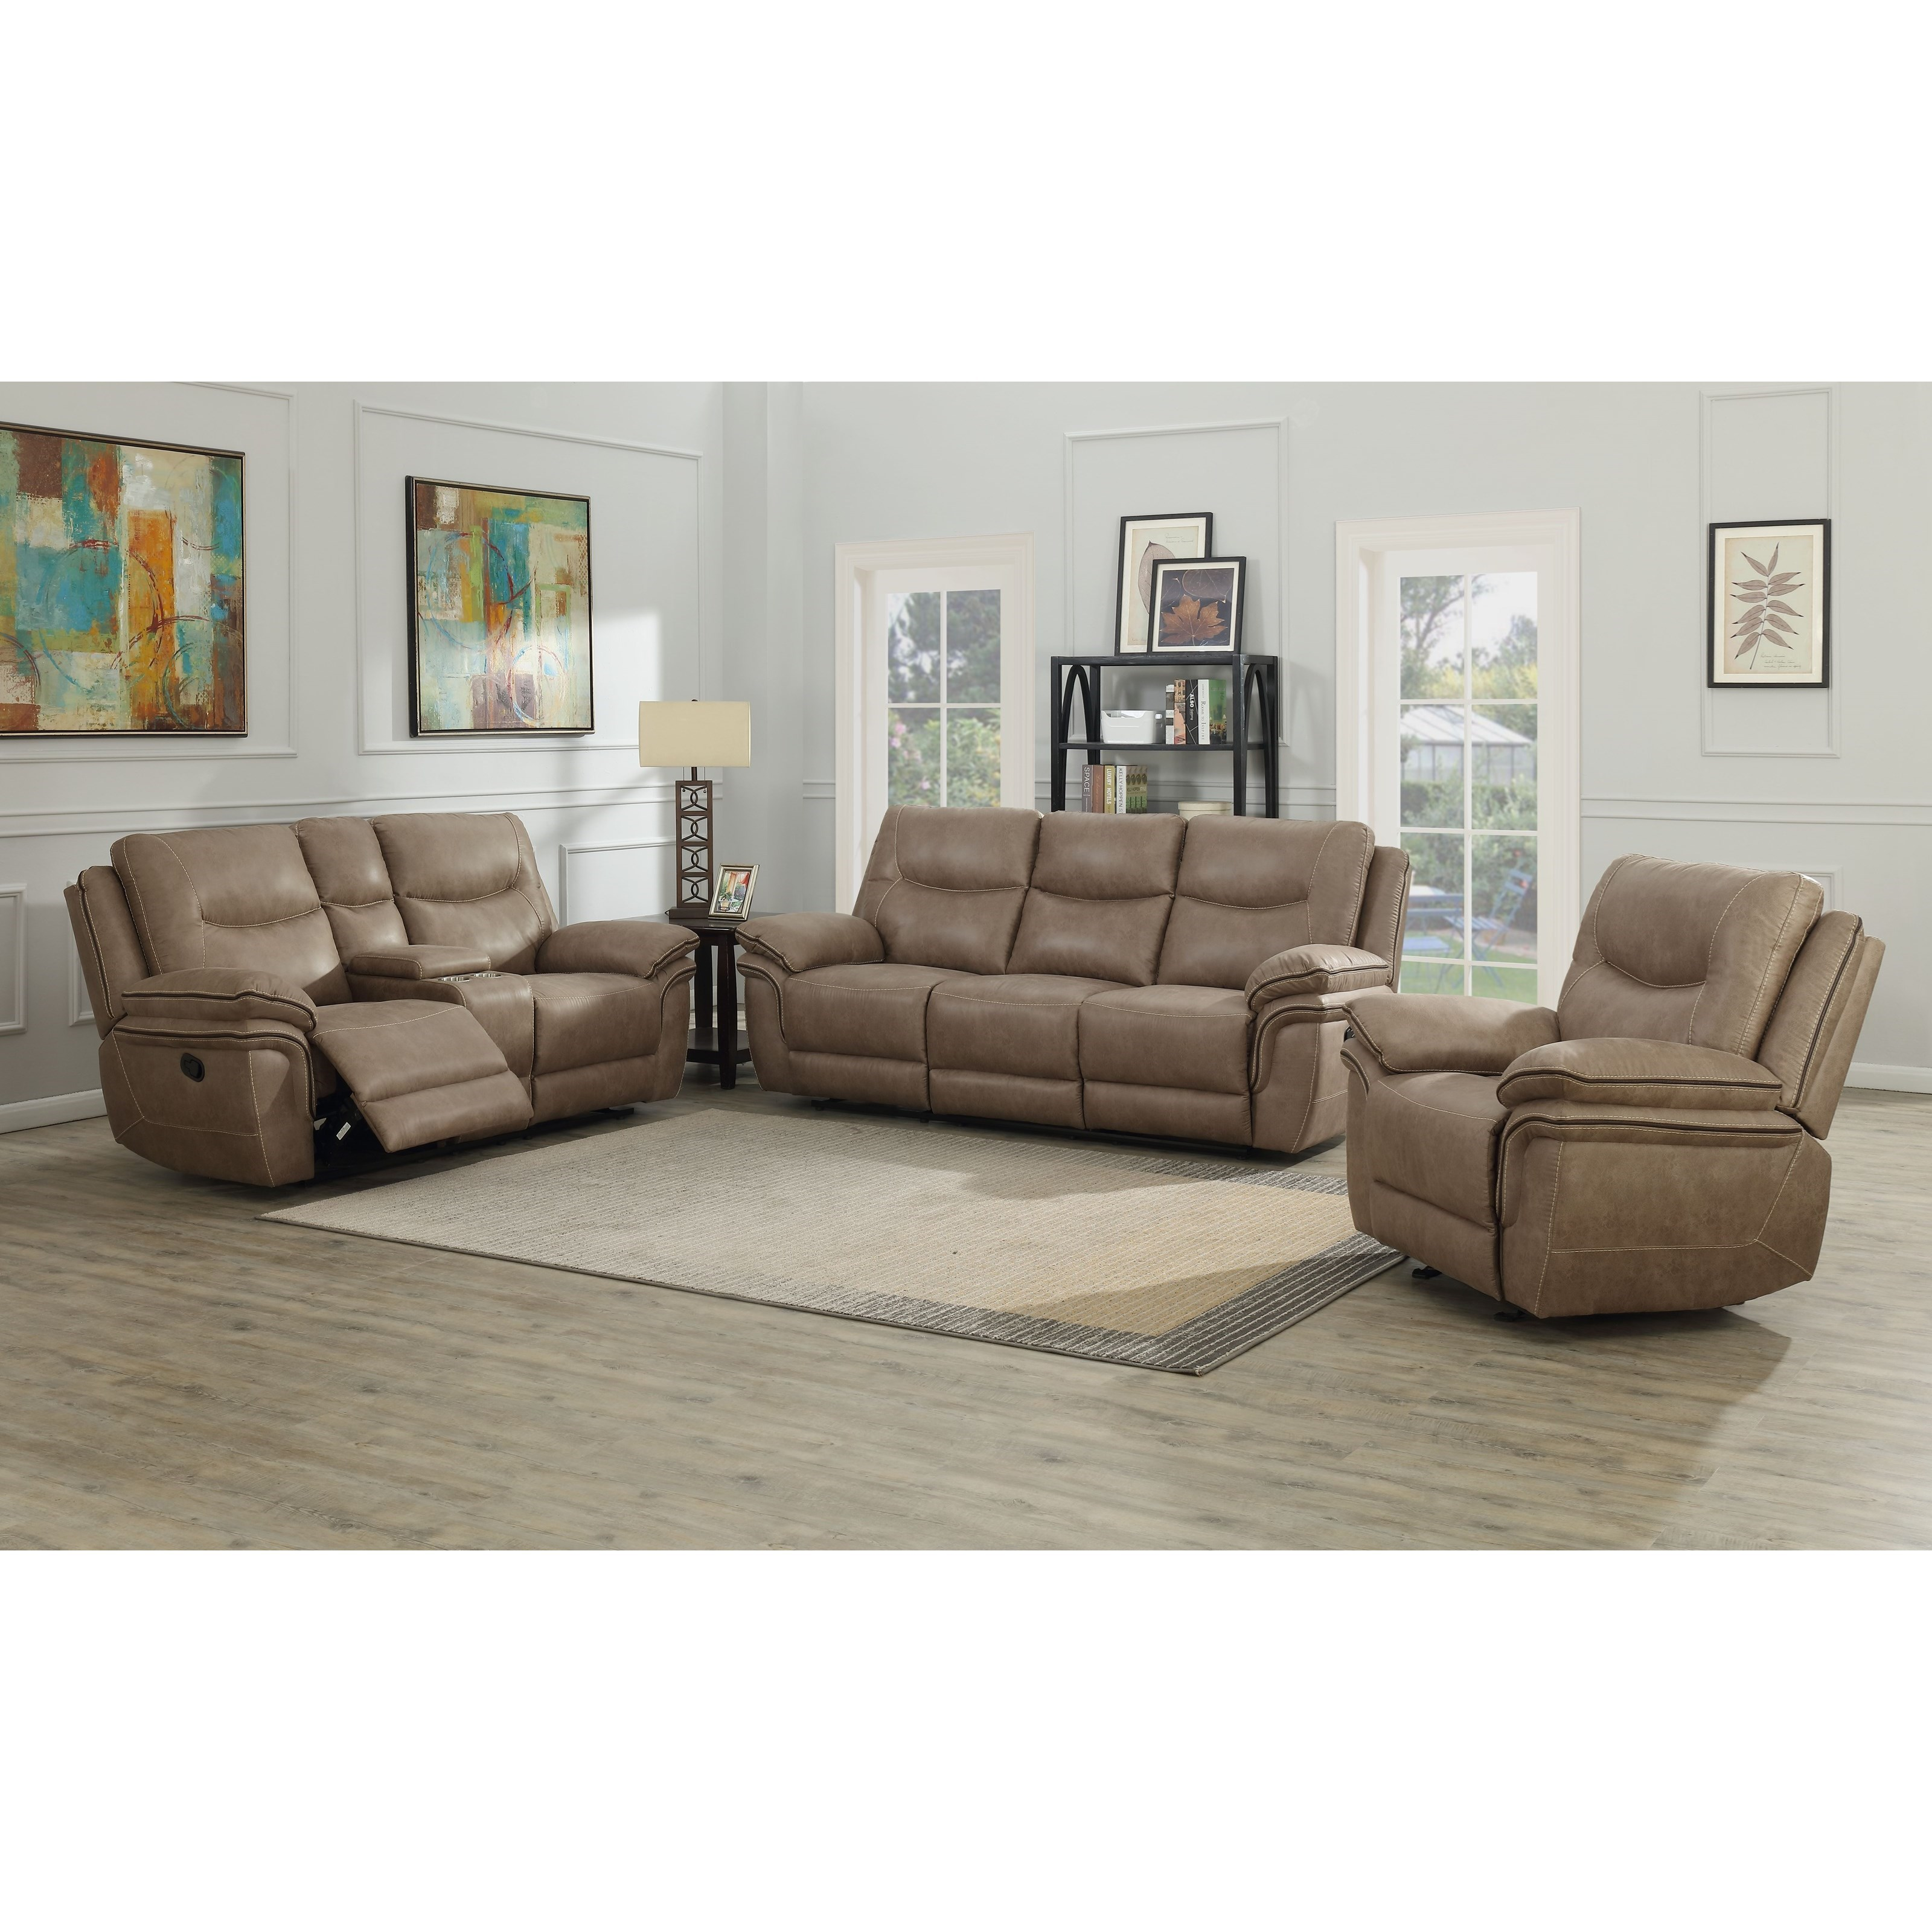 Isabella Reclining Living Room Group by Steve Silver at Northeast Factory Direct